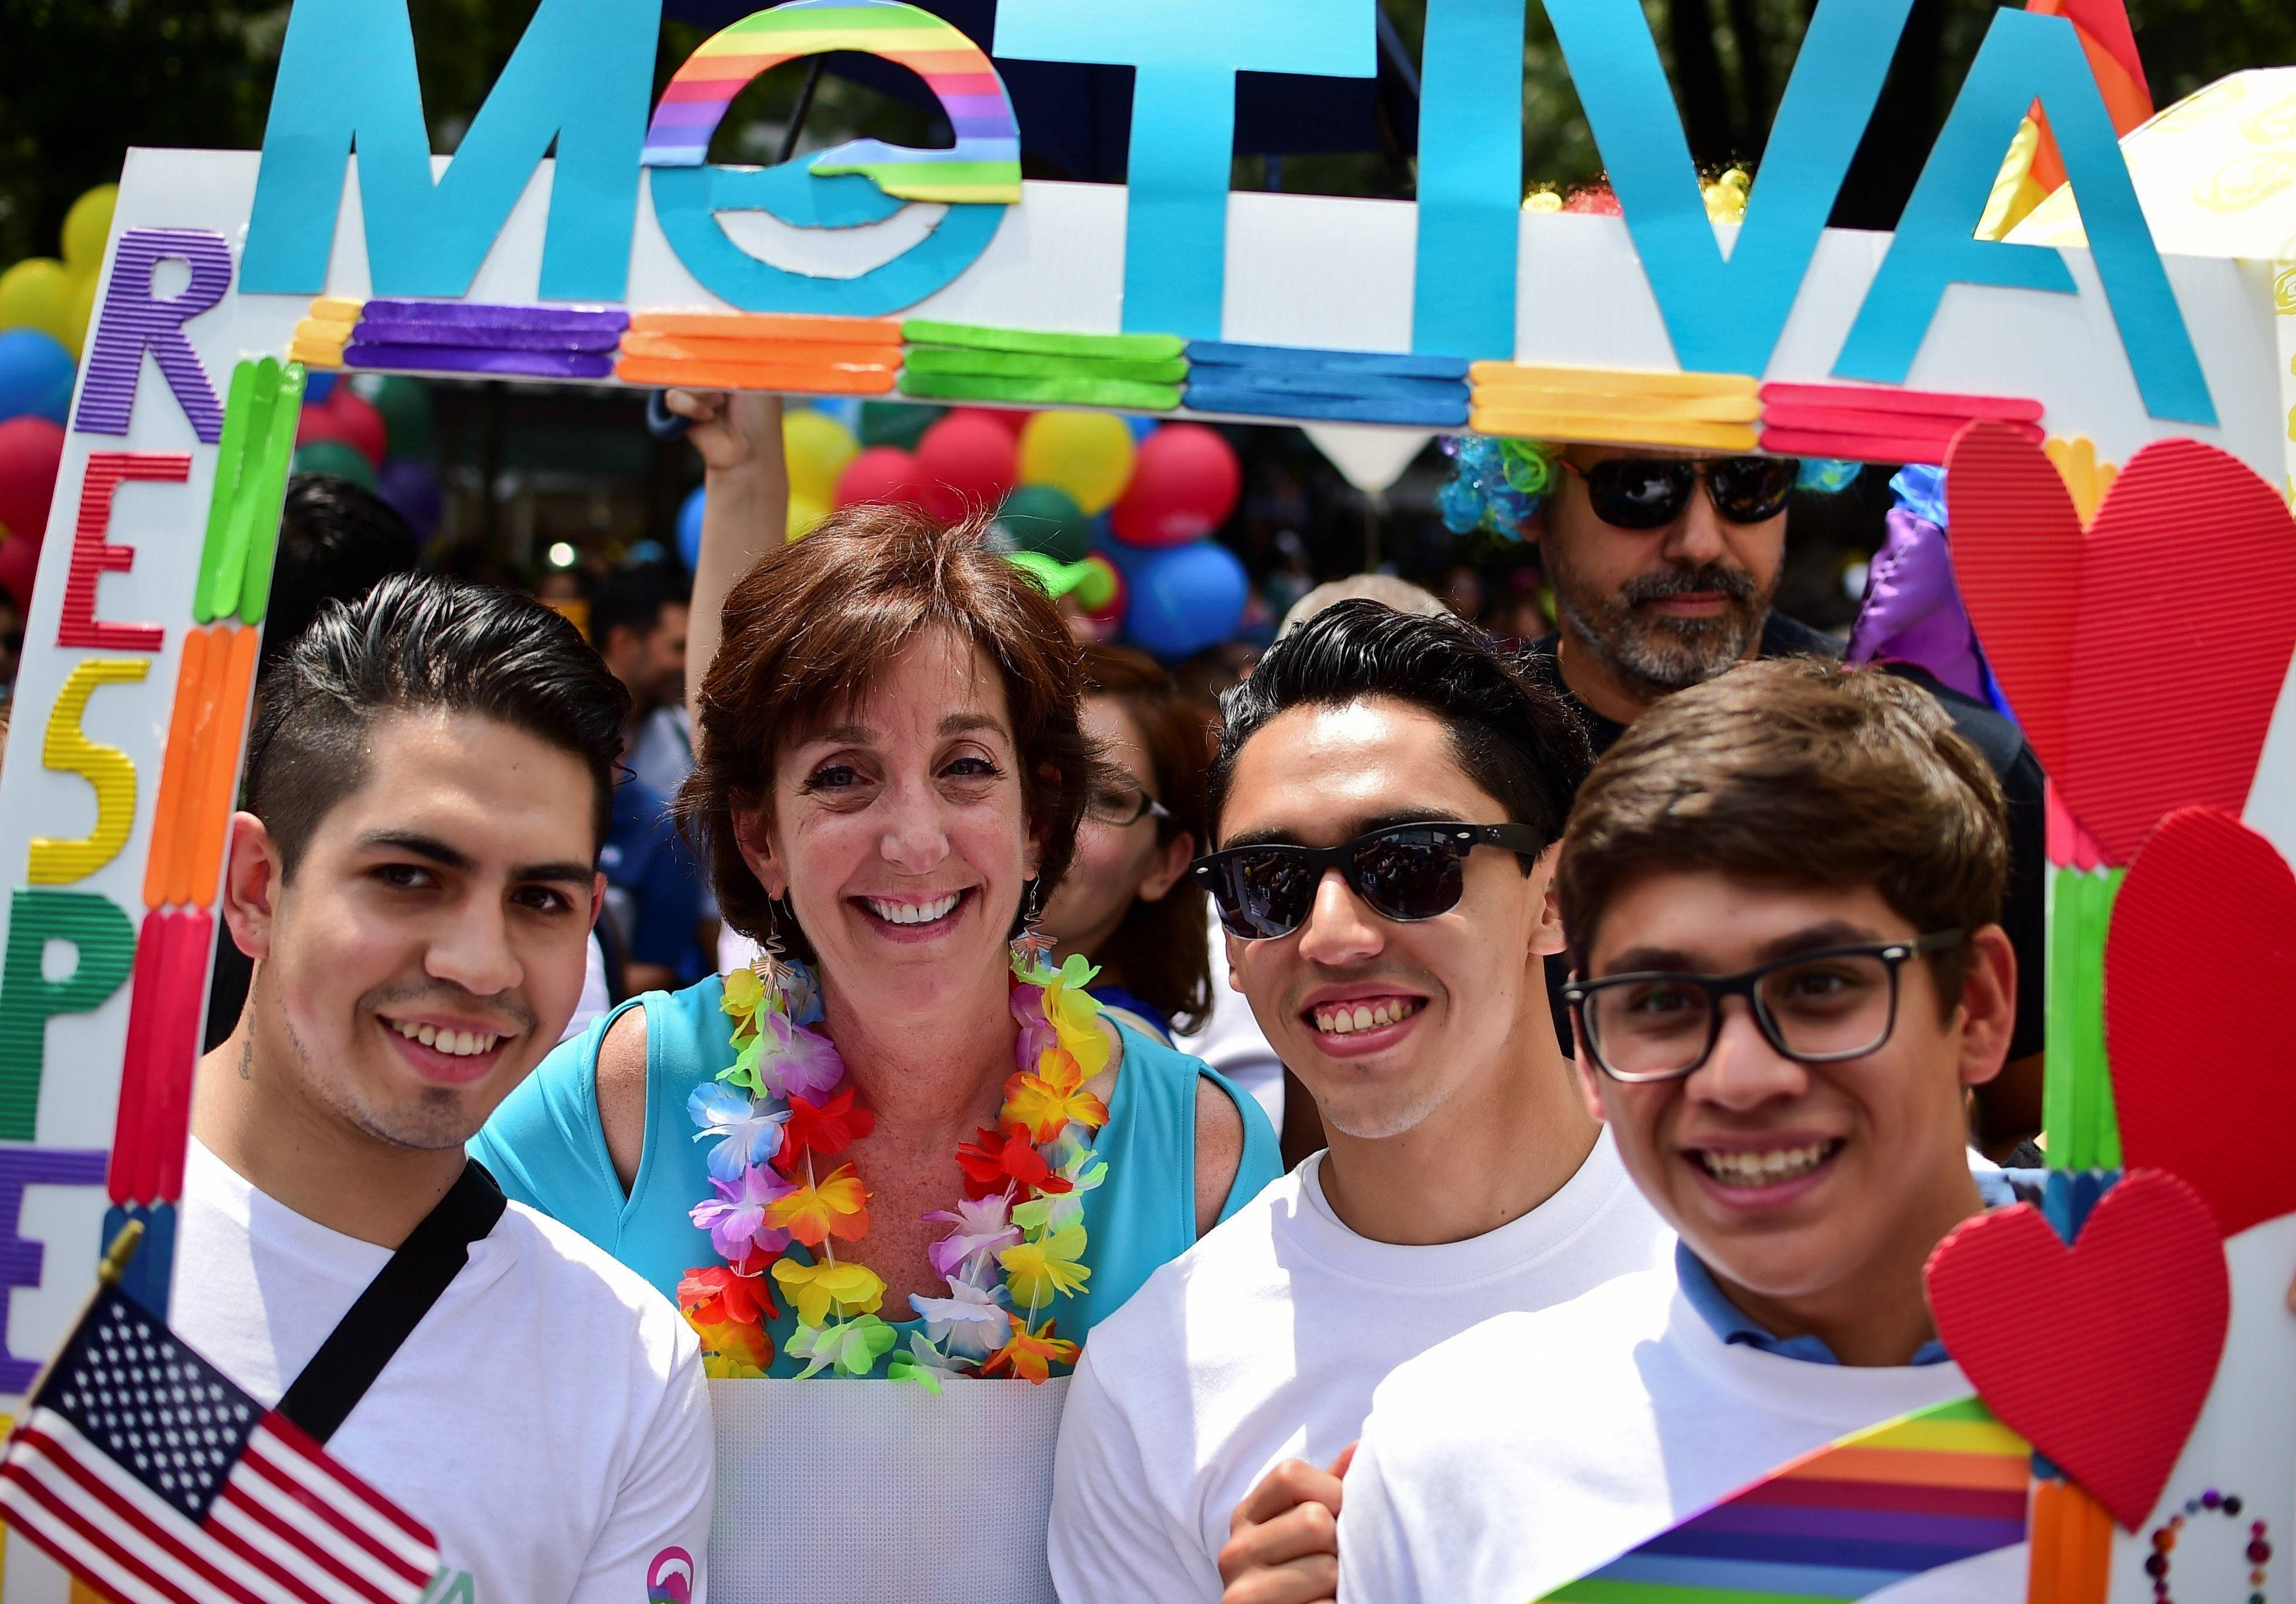 US Ambassador to Mexico, Roberta Jacobson (2-L), takes part in the Gay Pride Parade in Mexico City, on June 25, 2016.  Thousands of people took to the streets in the Mexican capital to participate in the parade. / AFP / RONALDO SCHEMIDT        (Photo credit should read RONALDO SCHEMIDT/AFP/Getty Images)